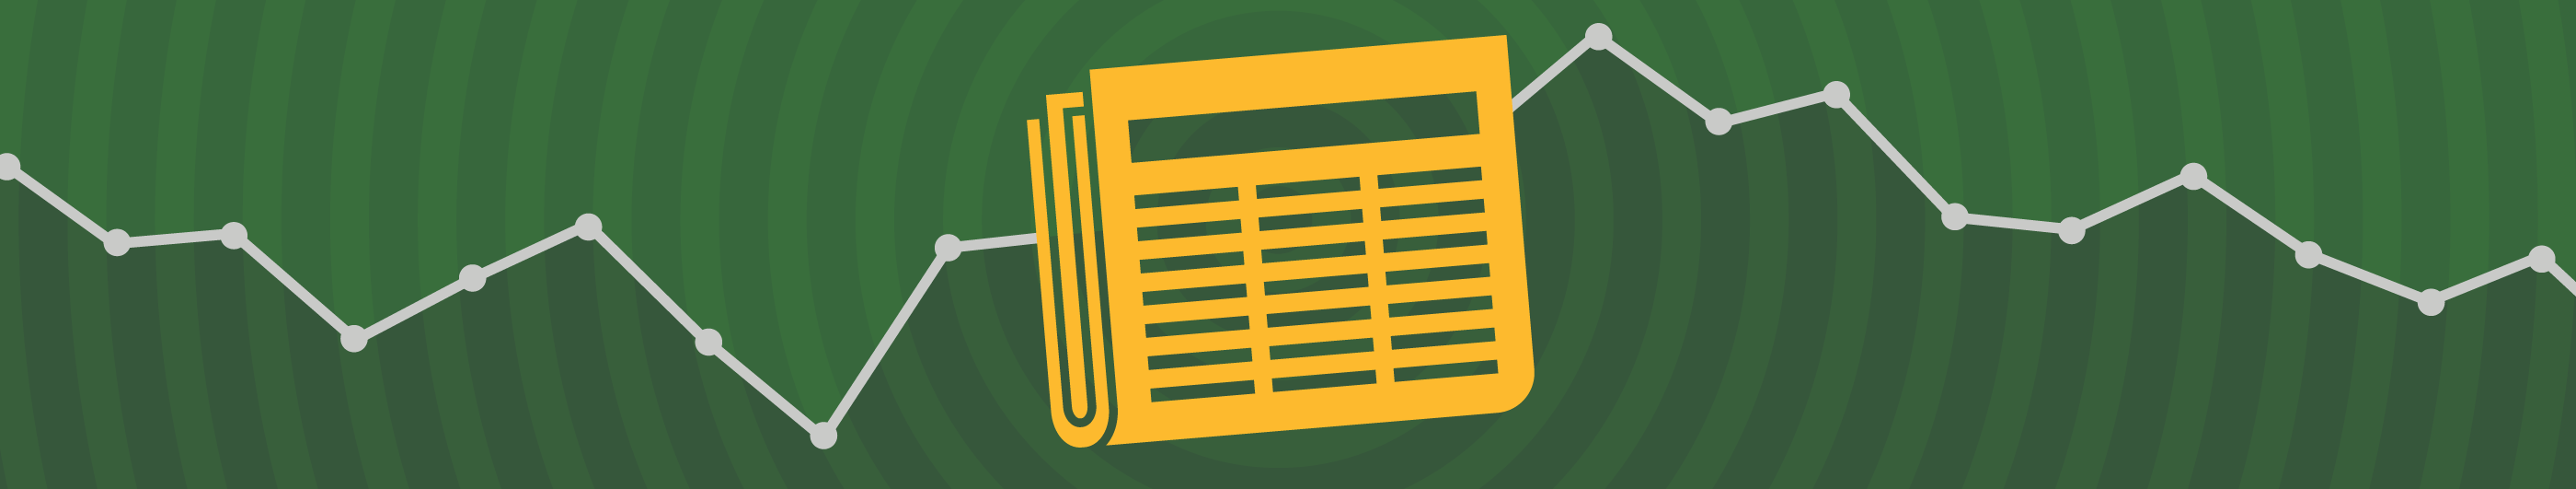 illustration of a yellow newspaper on a green background